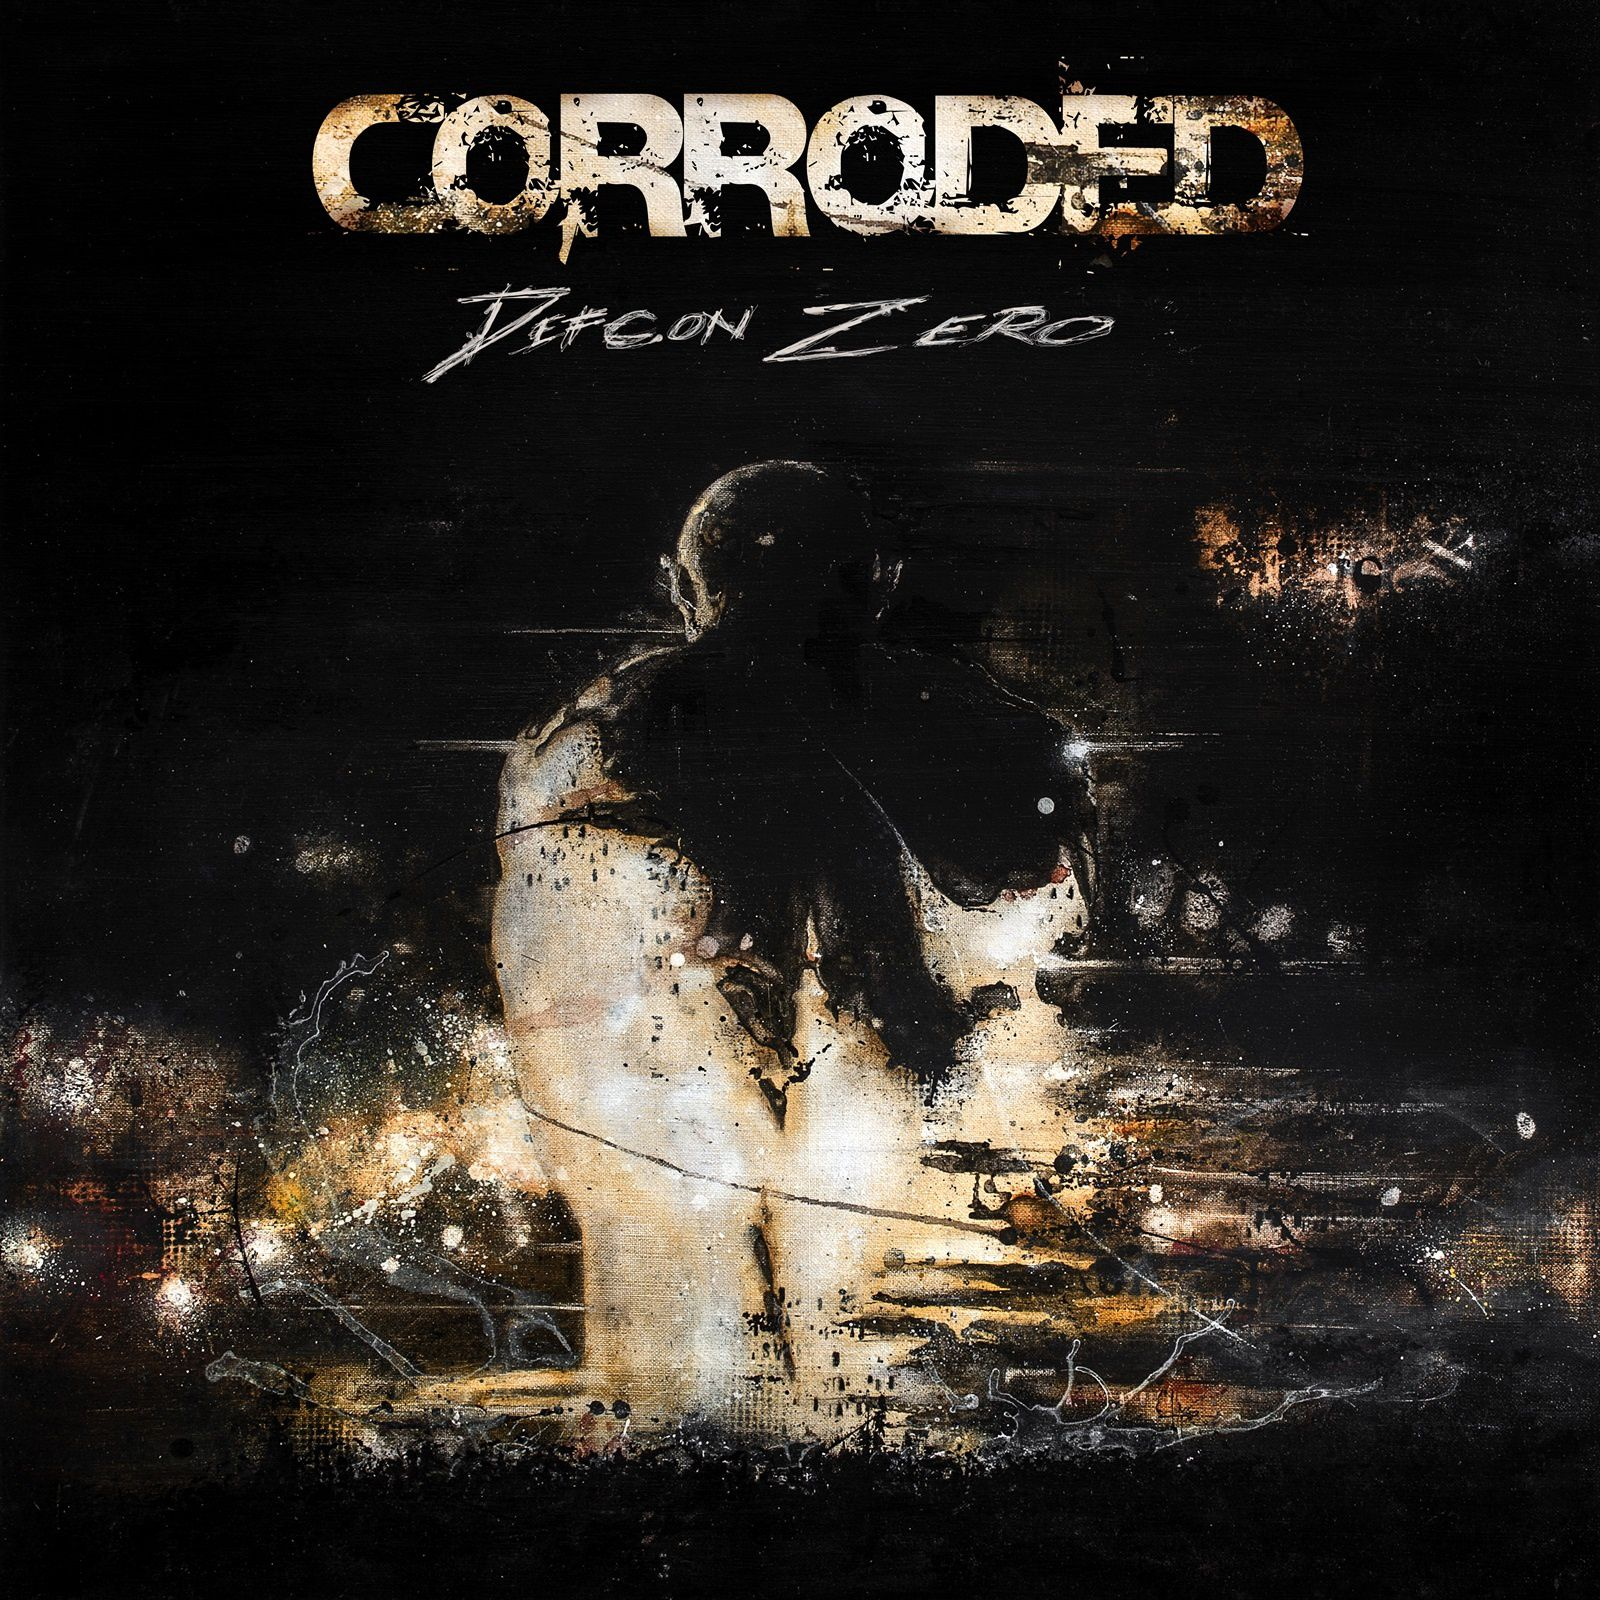 CD review CORRODED &quot&#x3B;Defcon One&quot&#x3B;